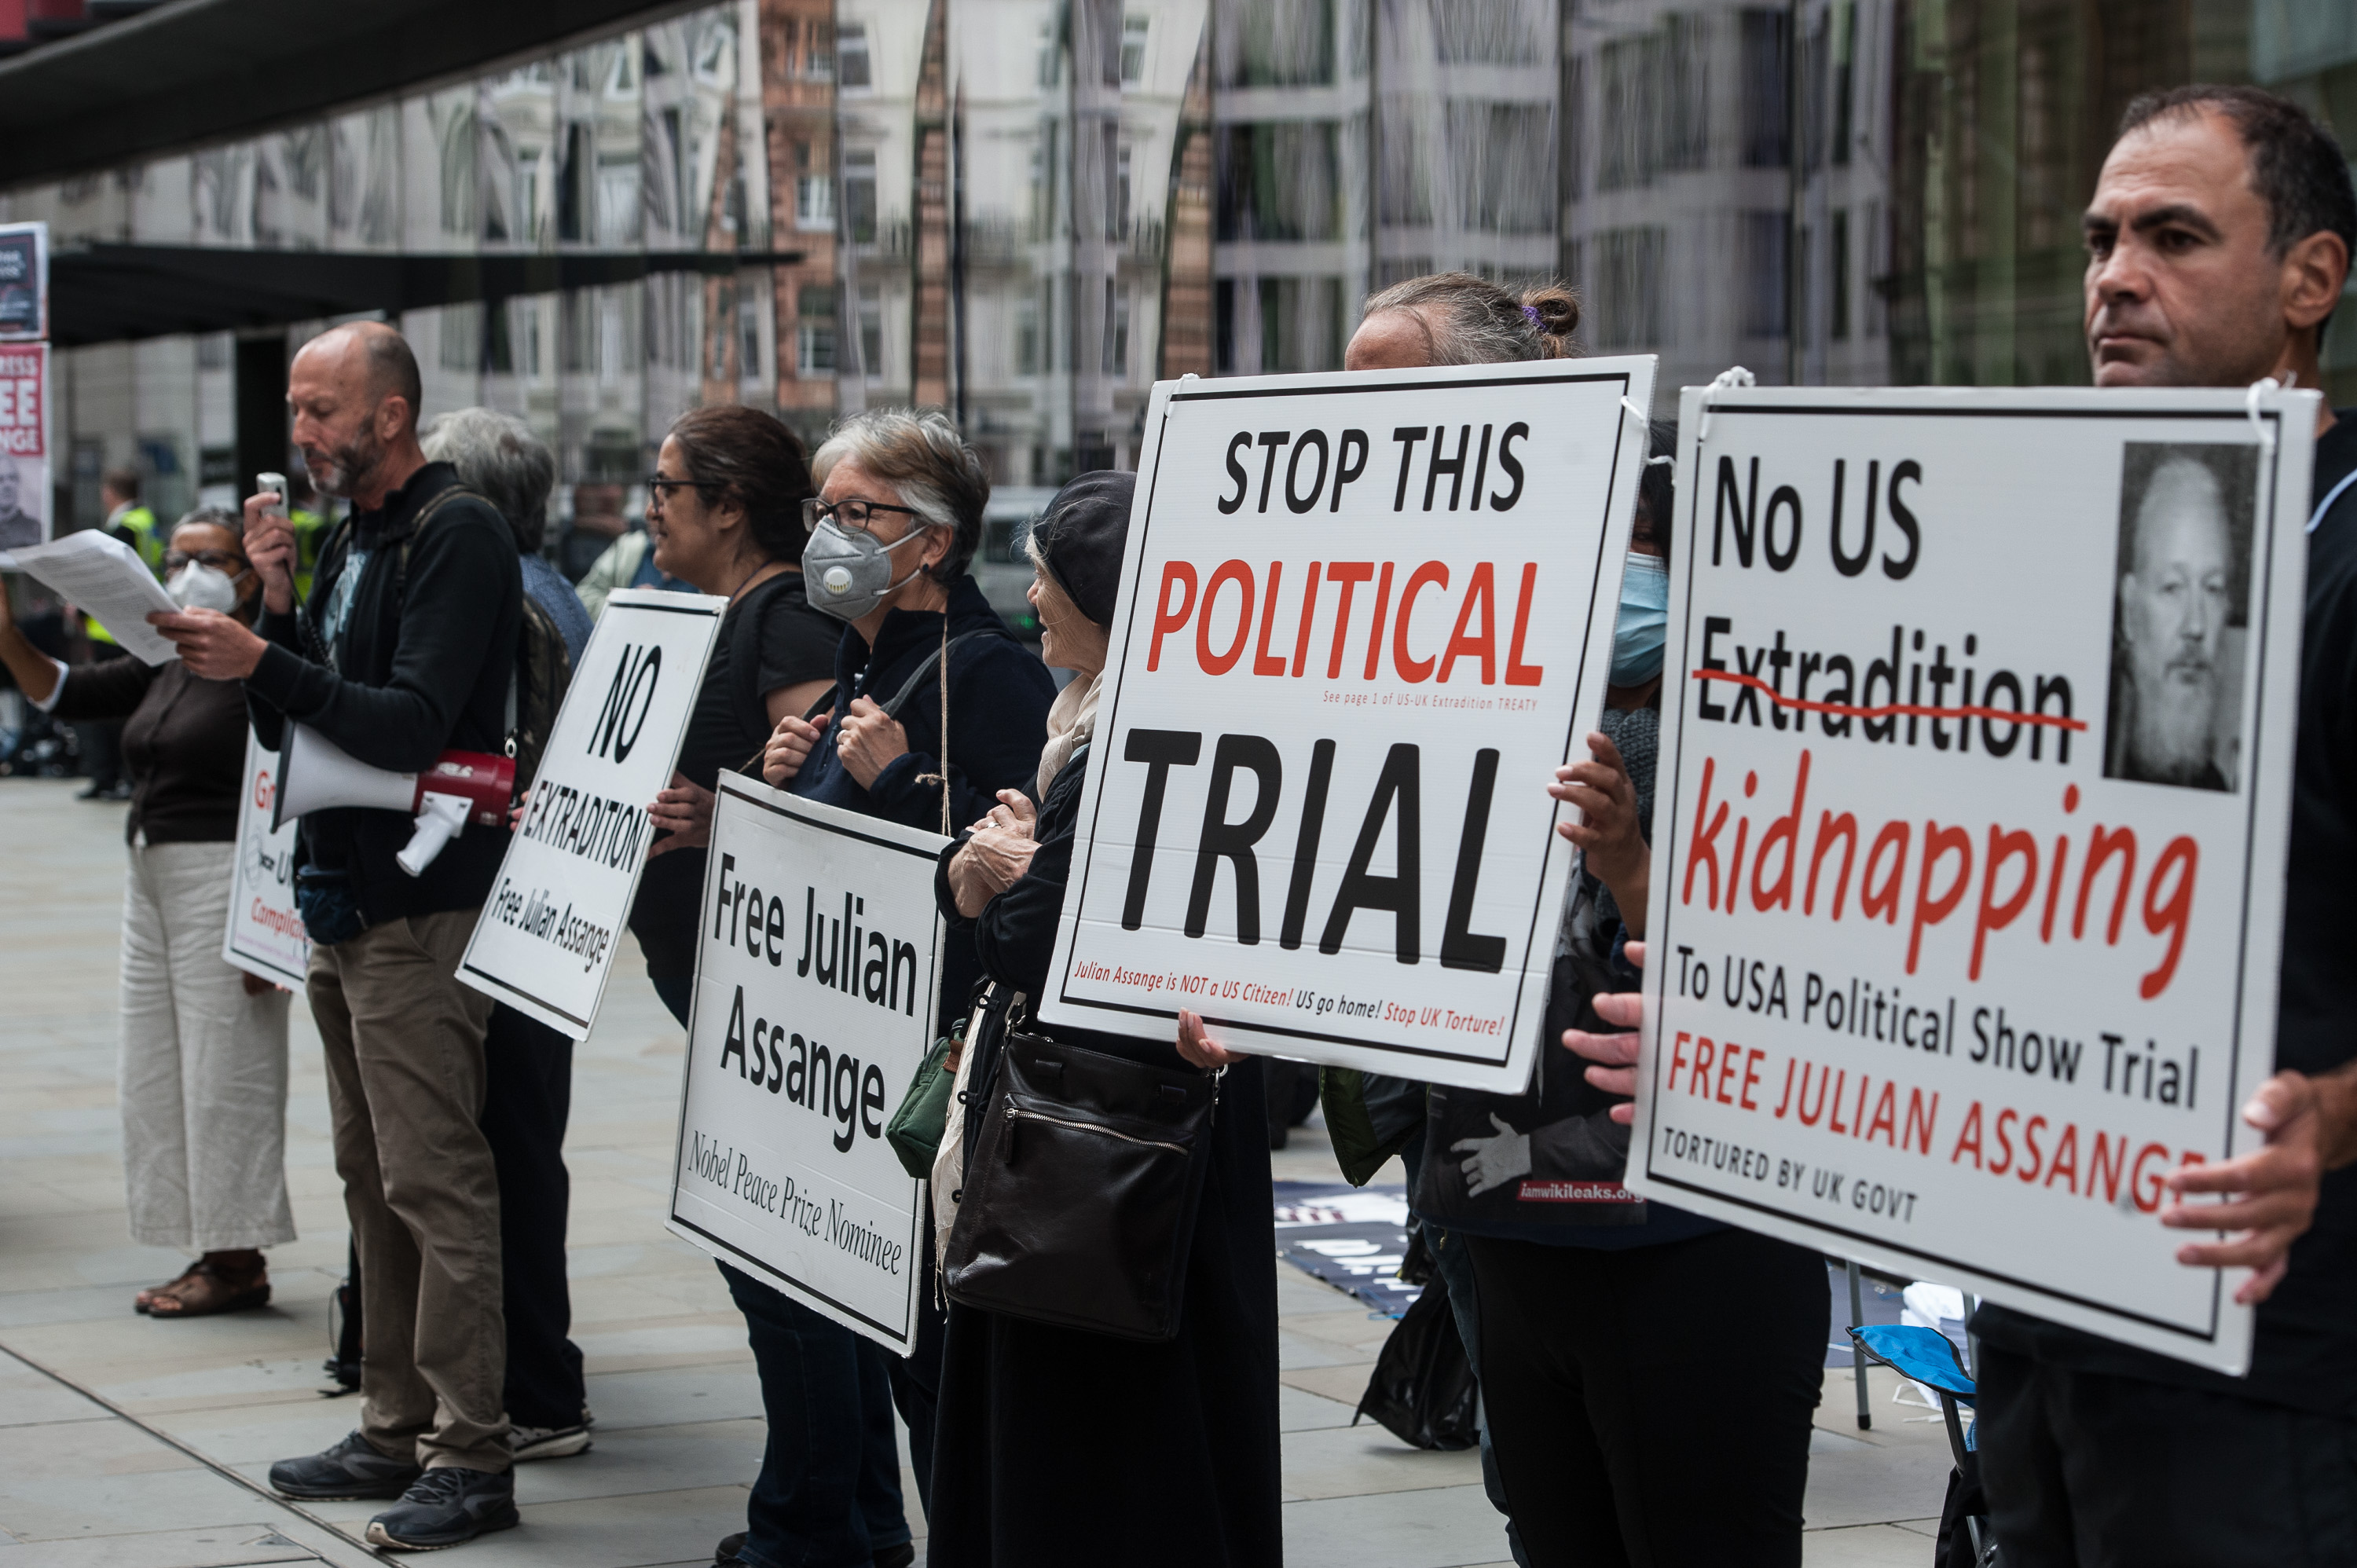 Assange Court Report September 15: Afternoon